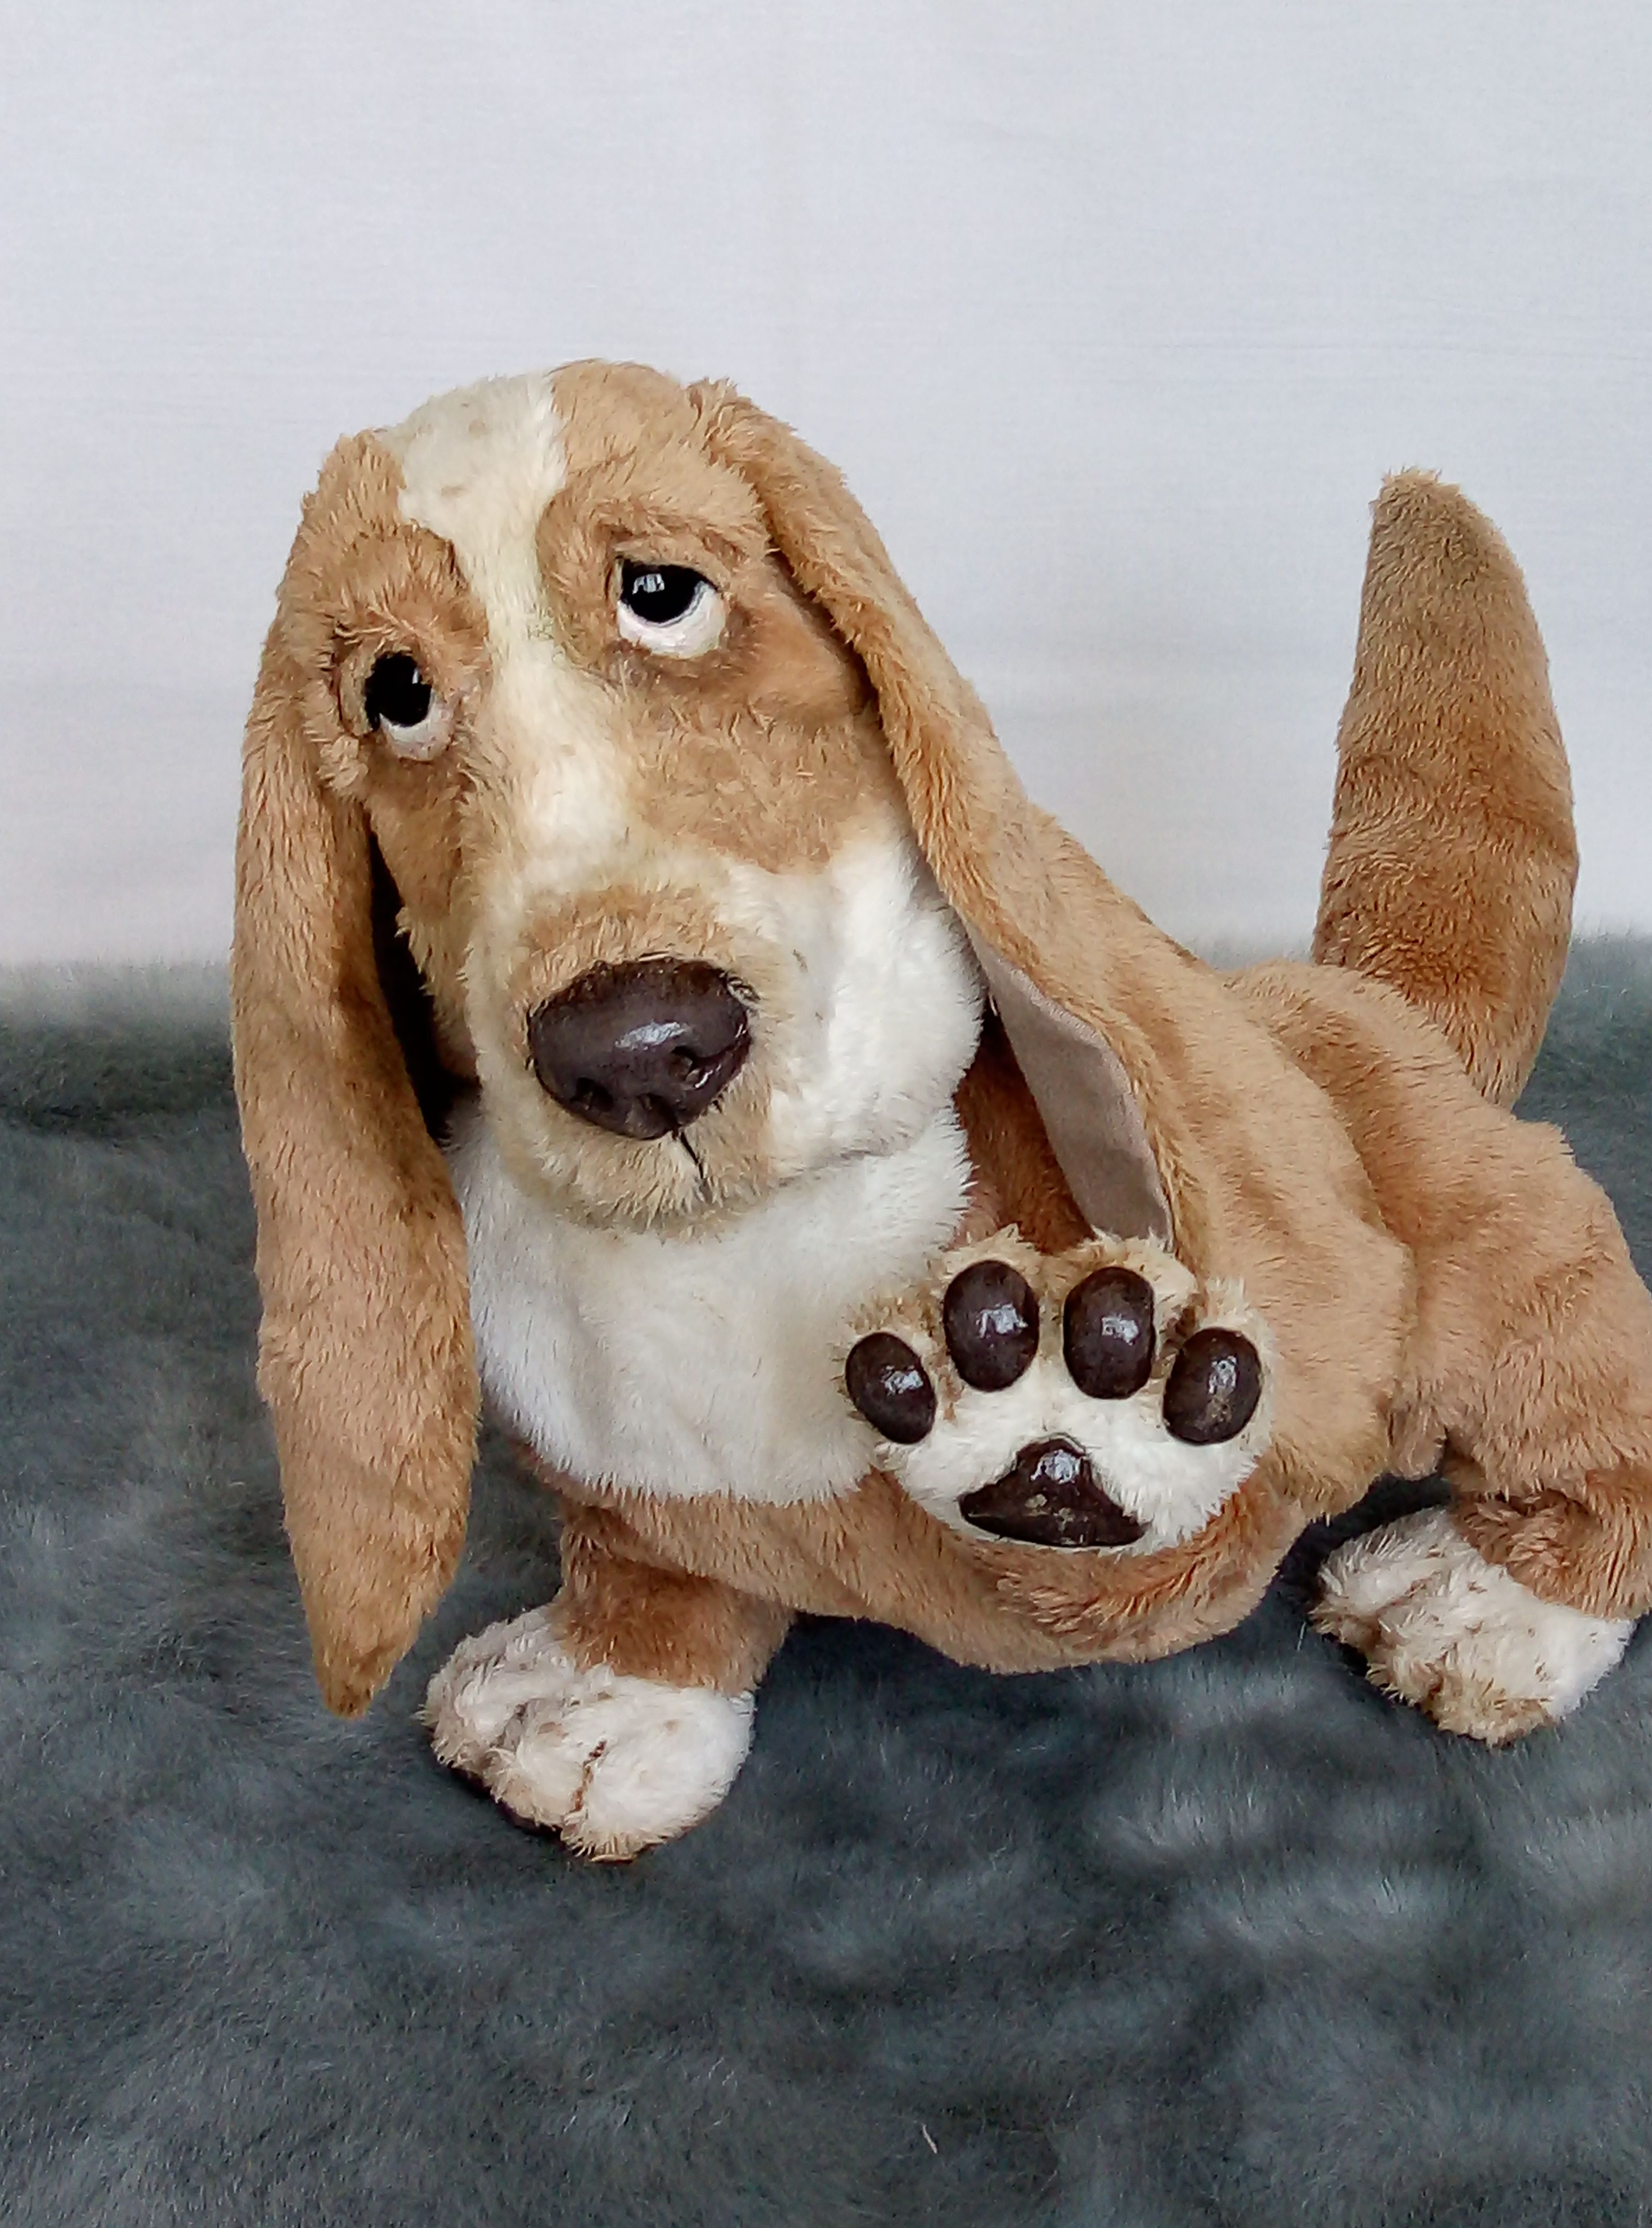 Realistic Animal Portrait Puppy Basset Hound Plush Collectible Etsy Realistic Stuffed Animals Puppies Dog Gifts [ 4208 x 3120 Pixel ]